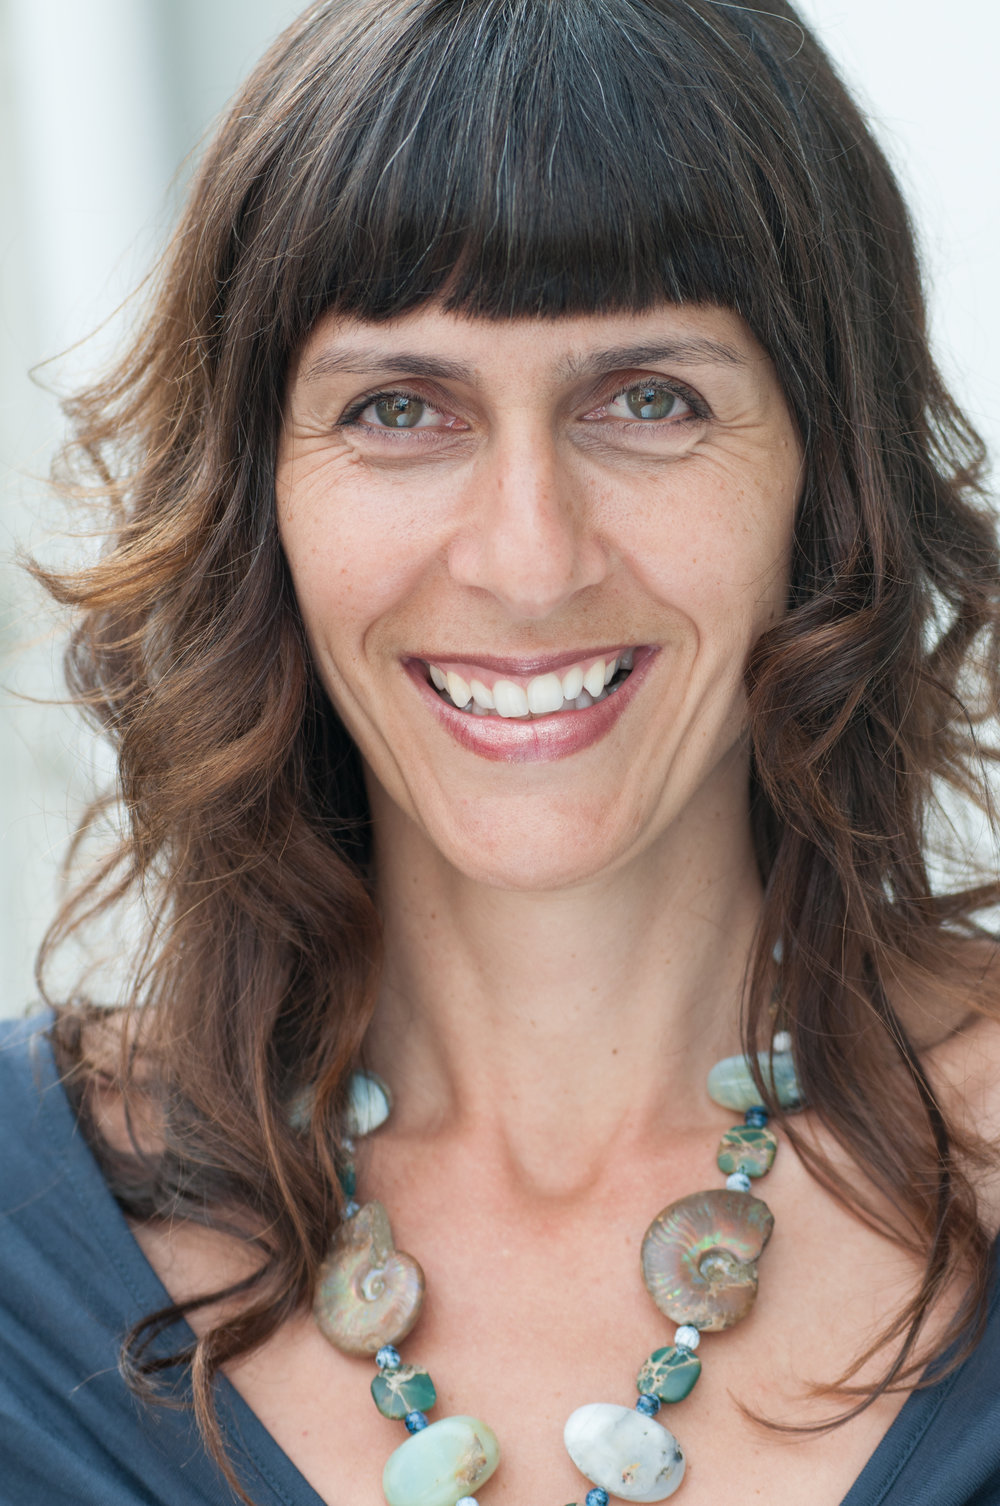 Anthea Barbary is a practitioner in Acupuncture,Hypnotherapy and Reiki therapy at The Open Door clinic..